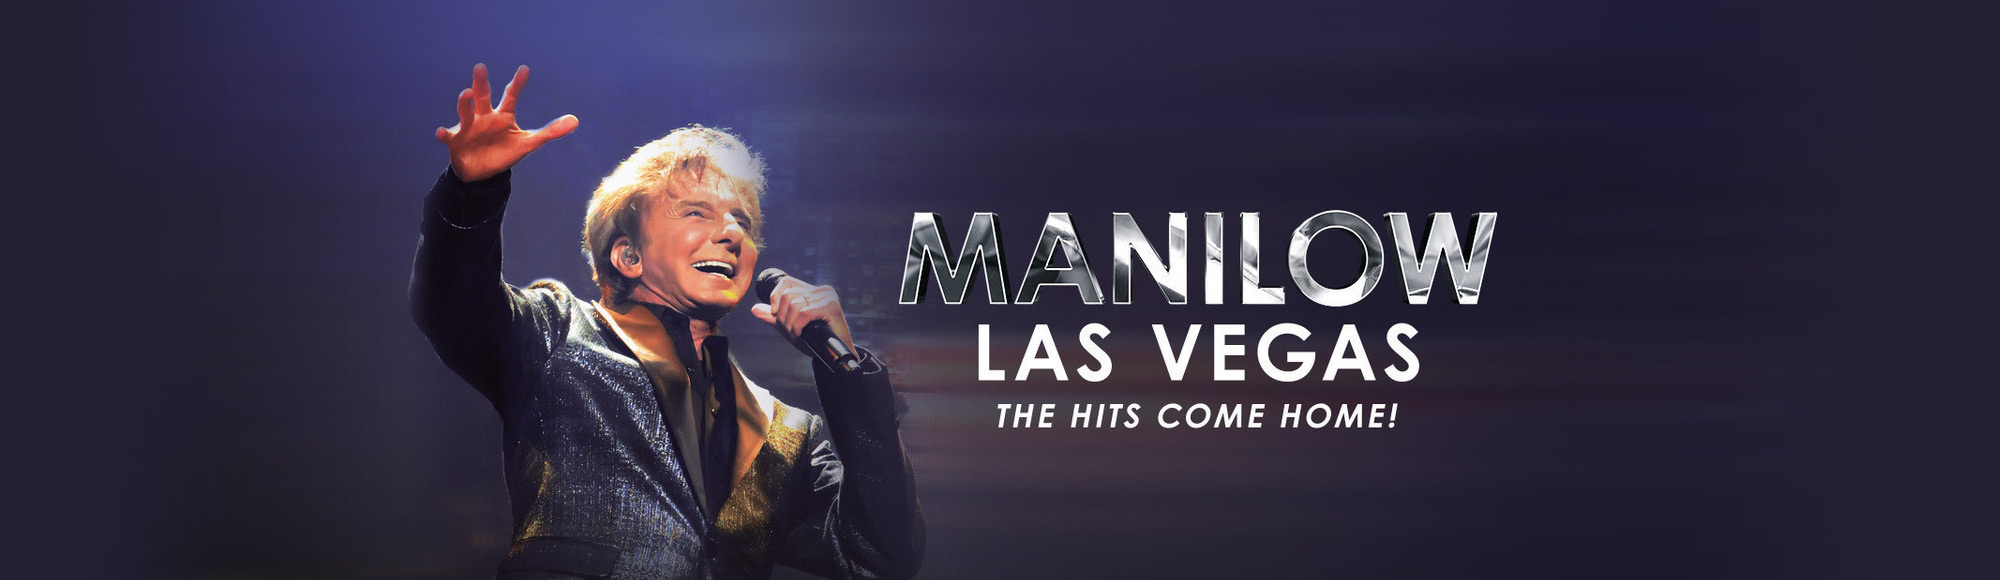 Barry Manilow: The Hits Come Home show